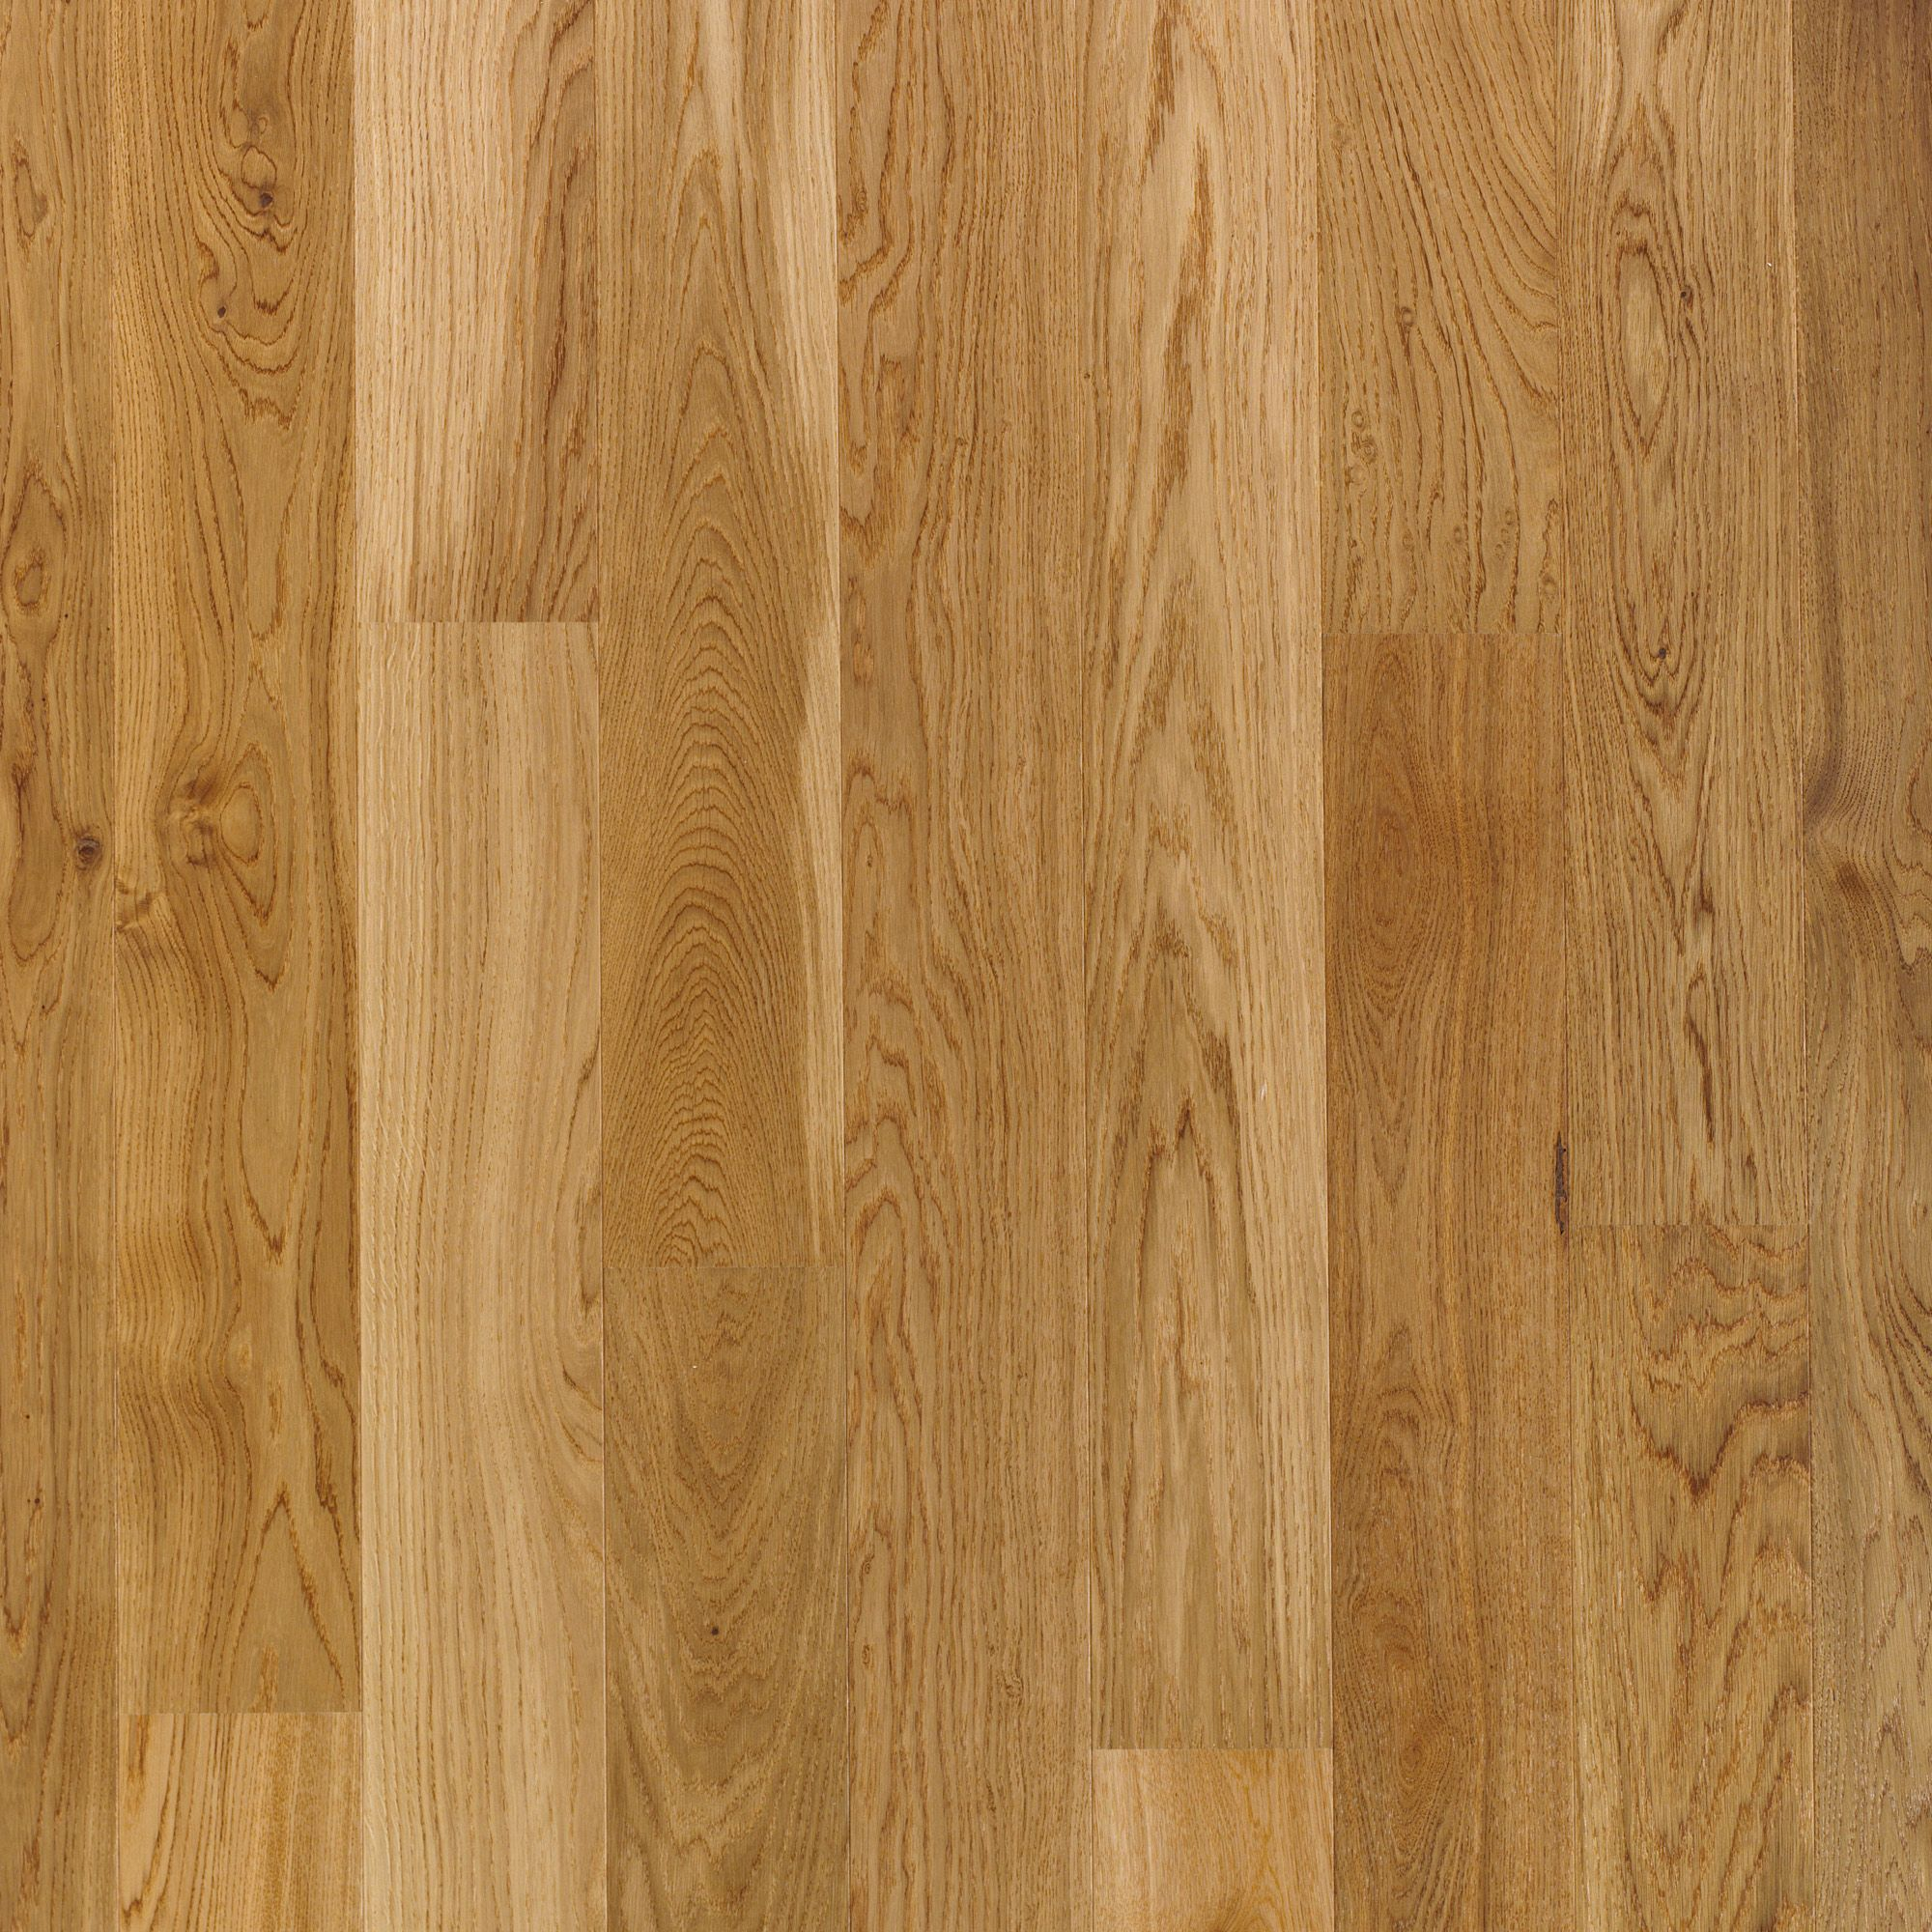 Quick Step Cadenza Natural Oak Effect Wood Top Layer Flooring Sample